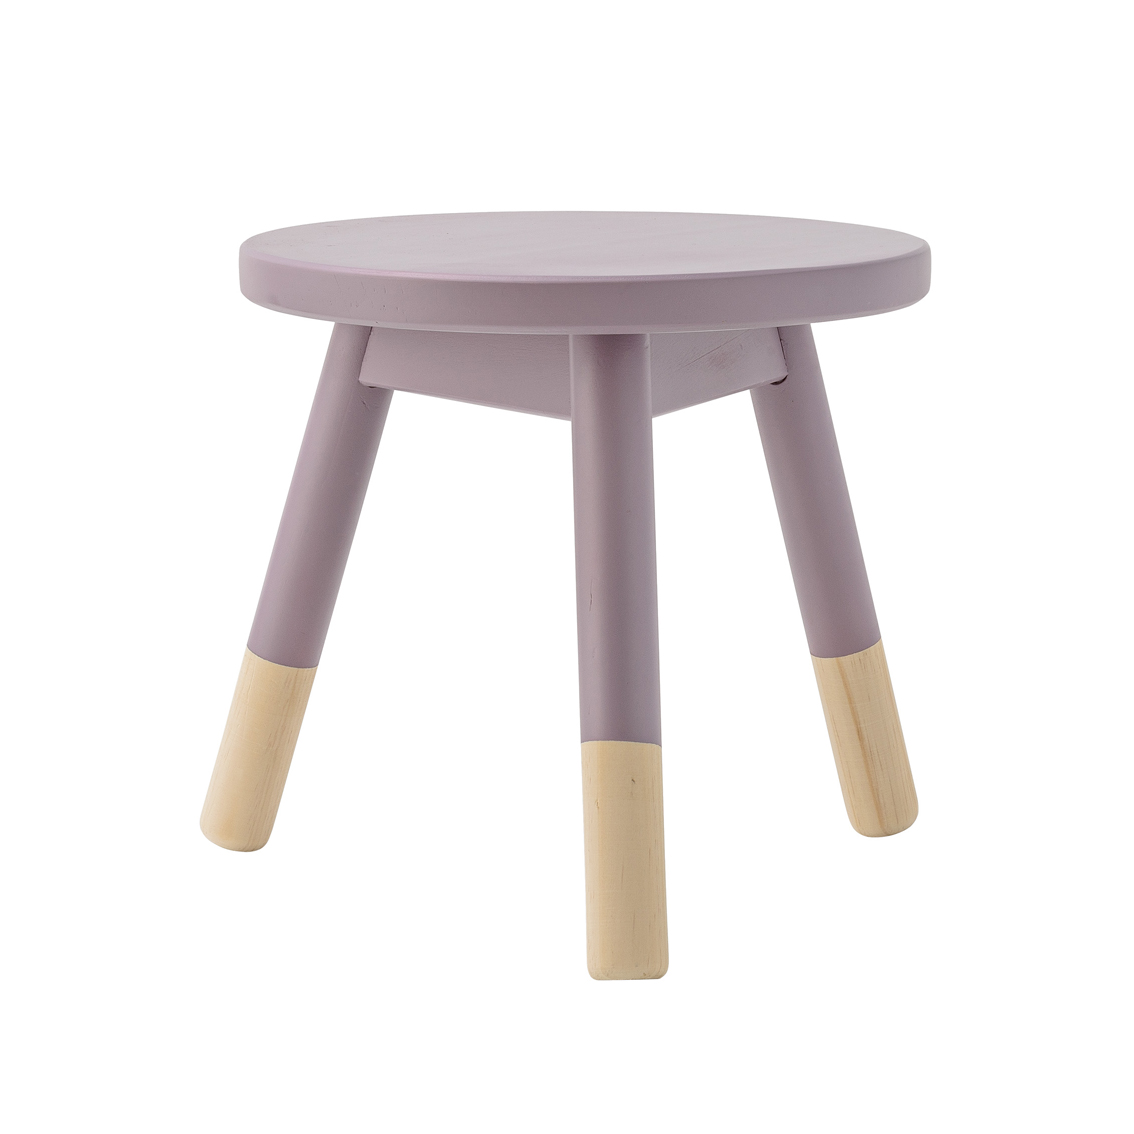 tabouret enfant violet bloomingville pour chambre enfant. Black Bedroom Furniture Sets. Home Design Ideas